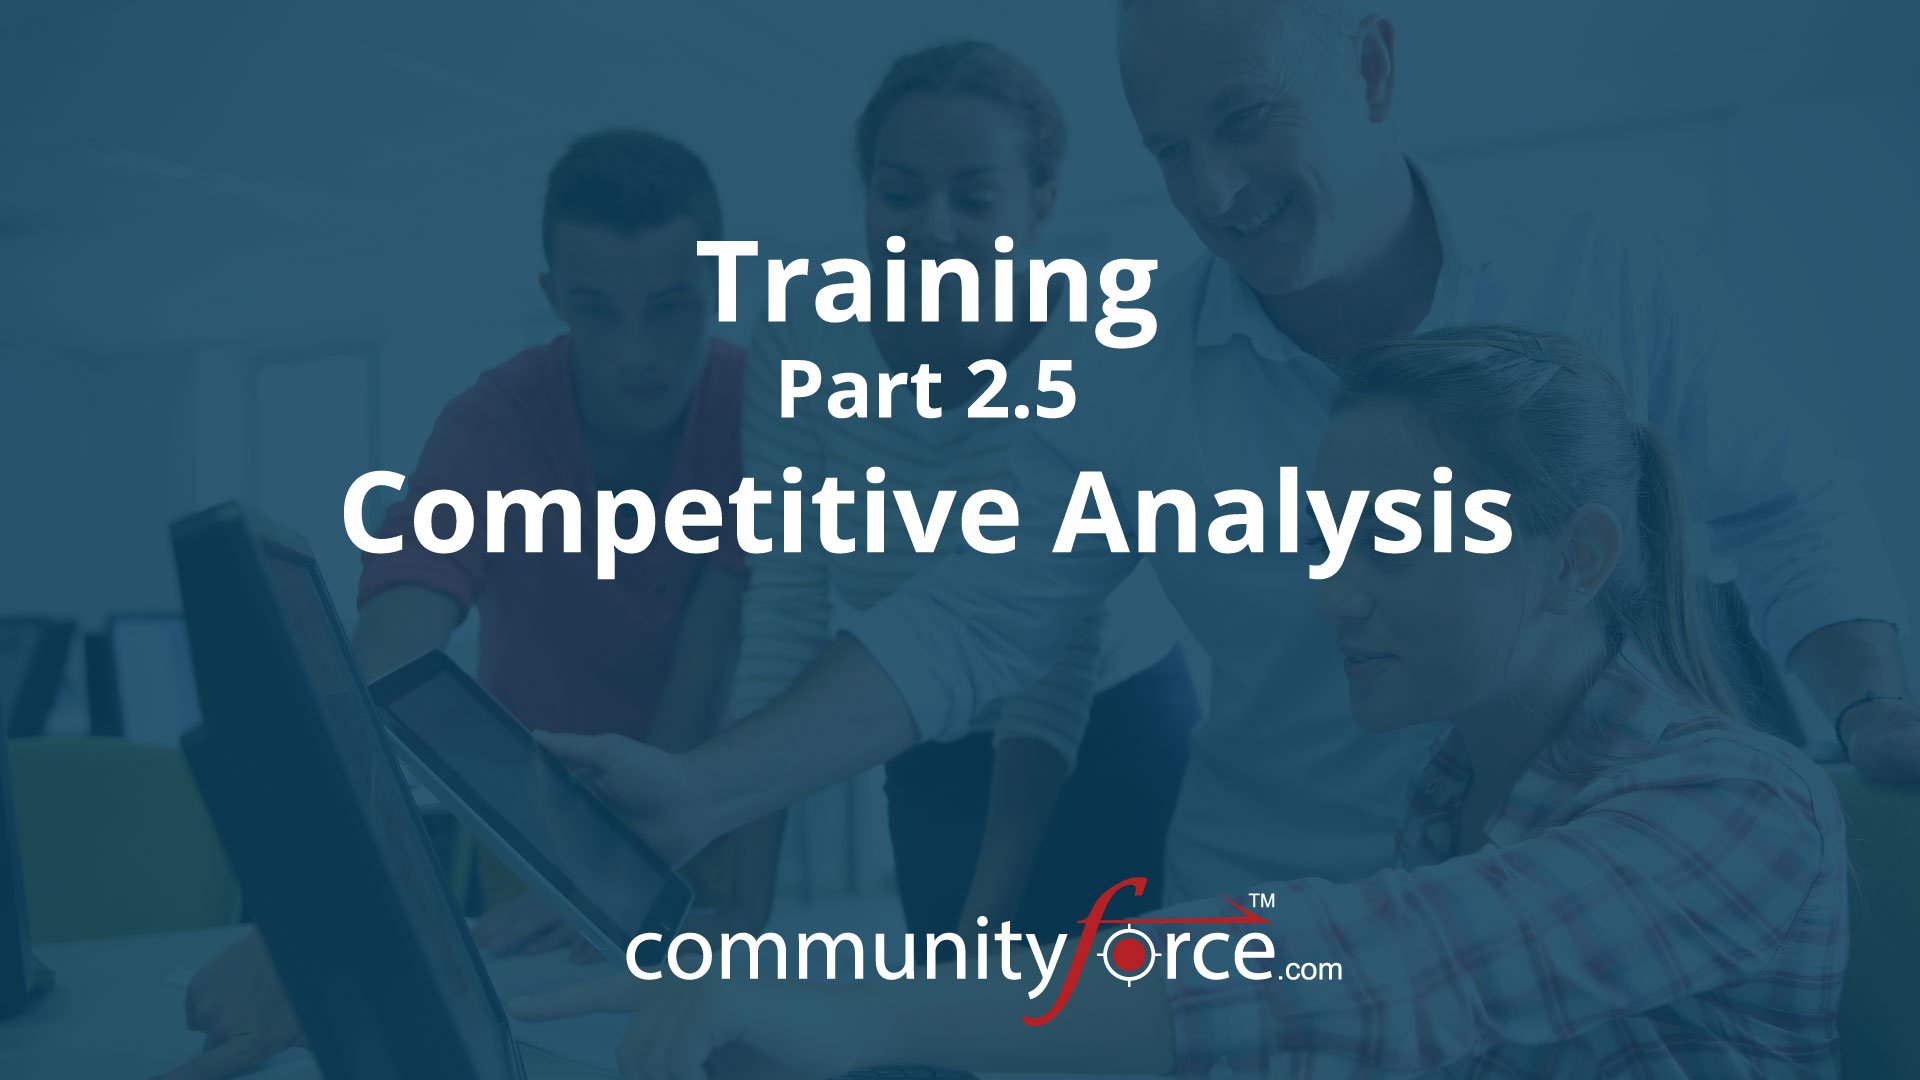 LF1 Training Part 2.5: Competitive Analysis